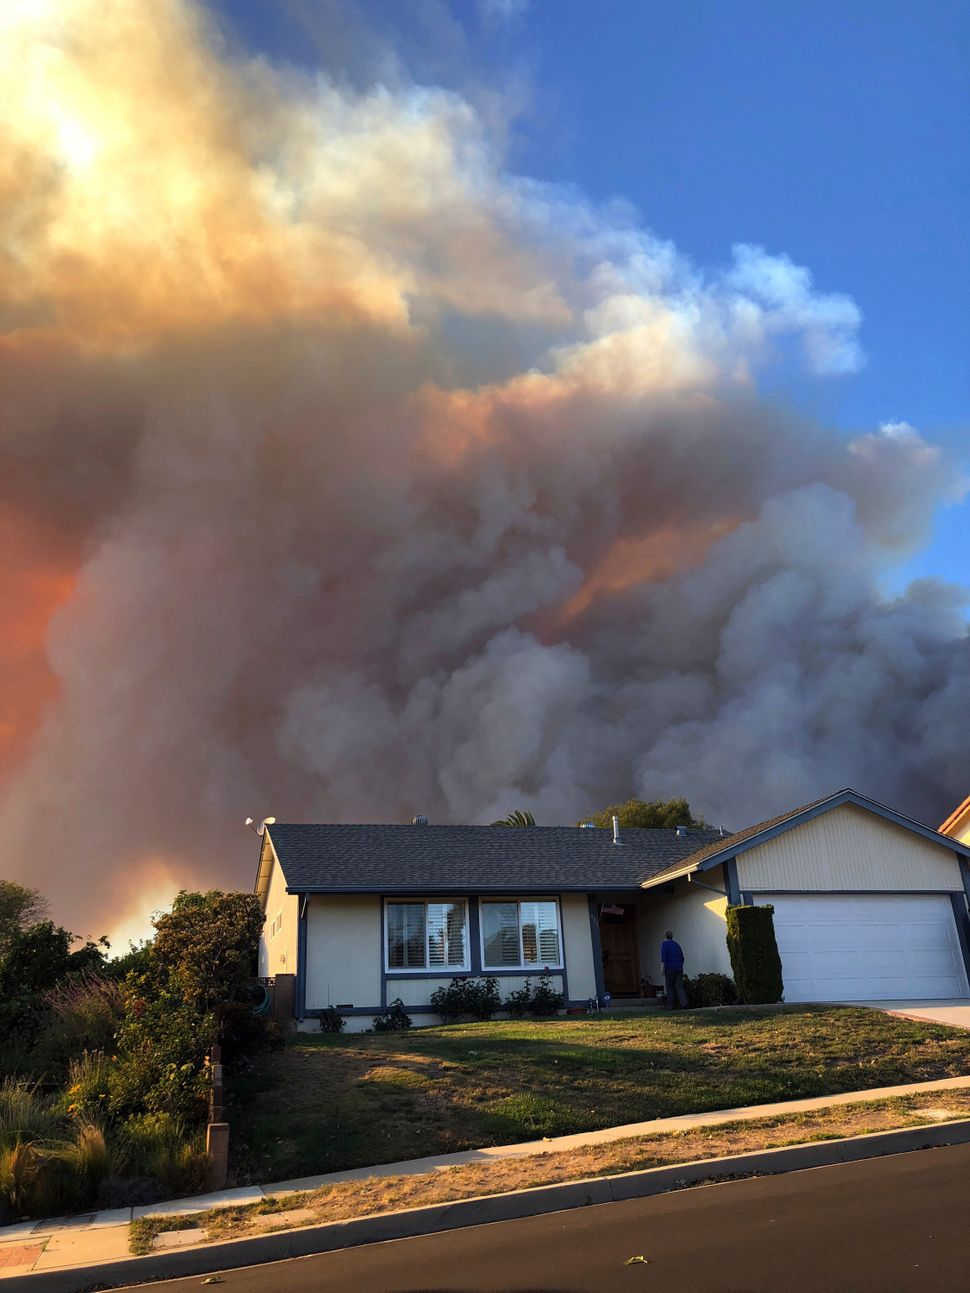 Plumes of smoke loom in the sky several miles away, seen behind a home in Thousand Oaks, Calif.